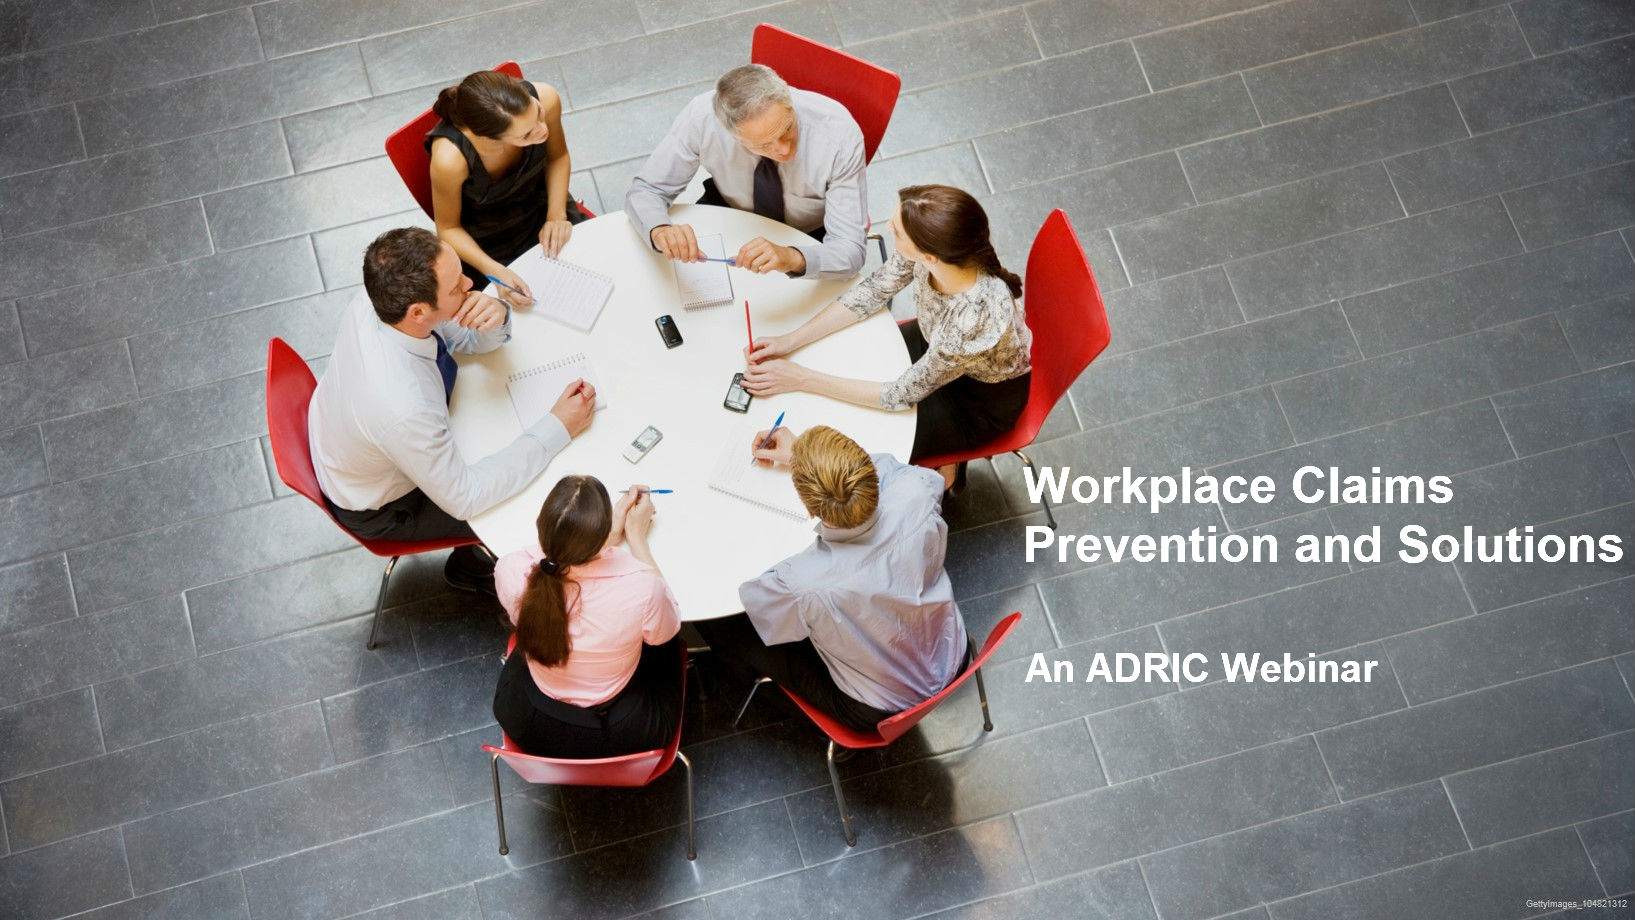 ADRIC Webinar - Workplace Claims Prevention and Solutions